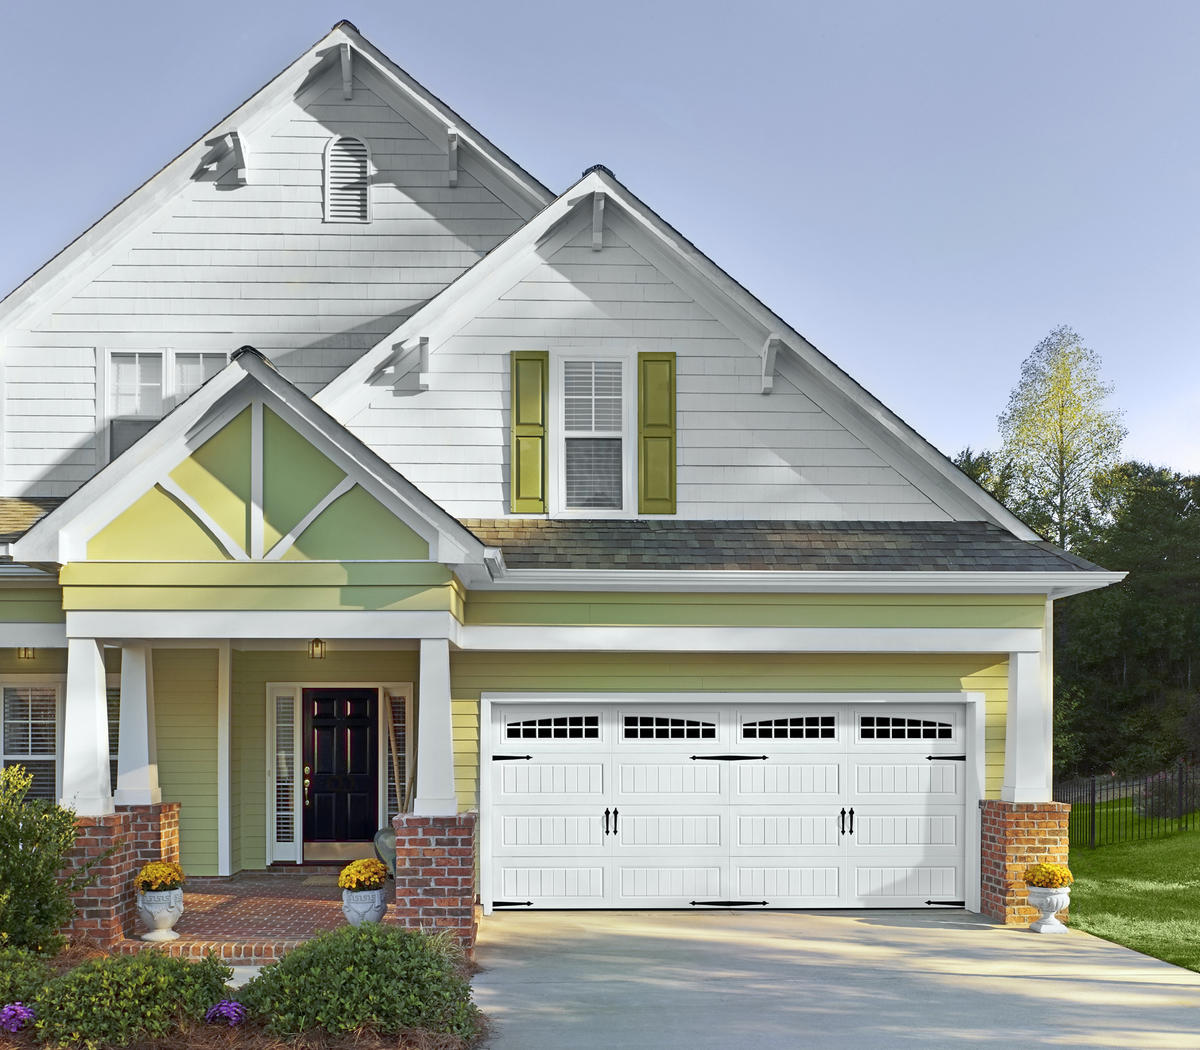 Garage door replacement cost comparison 10 ft wide garage for 10 feet wide garage door